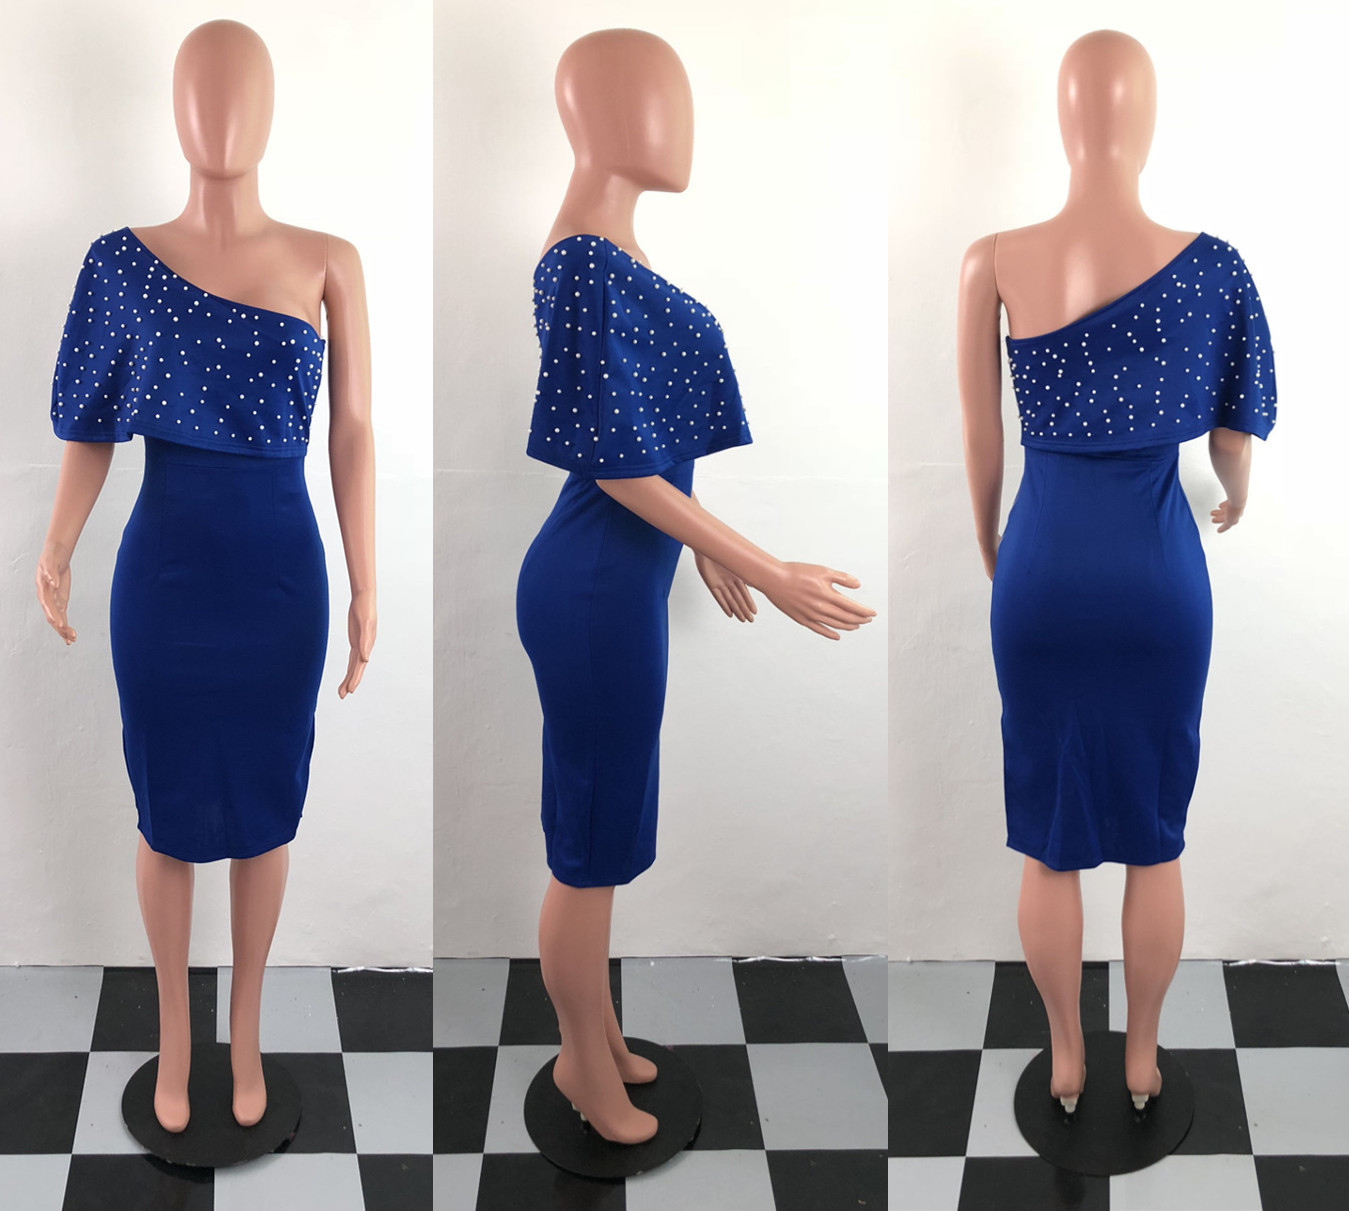 Women Sexy One Shoulder Bodycon Dress 2019 Summer Pearl Beading Split Pencil Dress Ladies Elegant Midi Party Dresses Plus Size in Dresses from Women 39 s Clothing